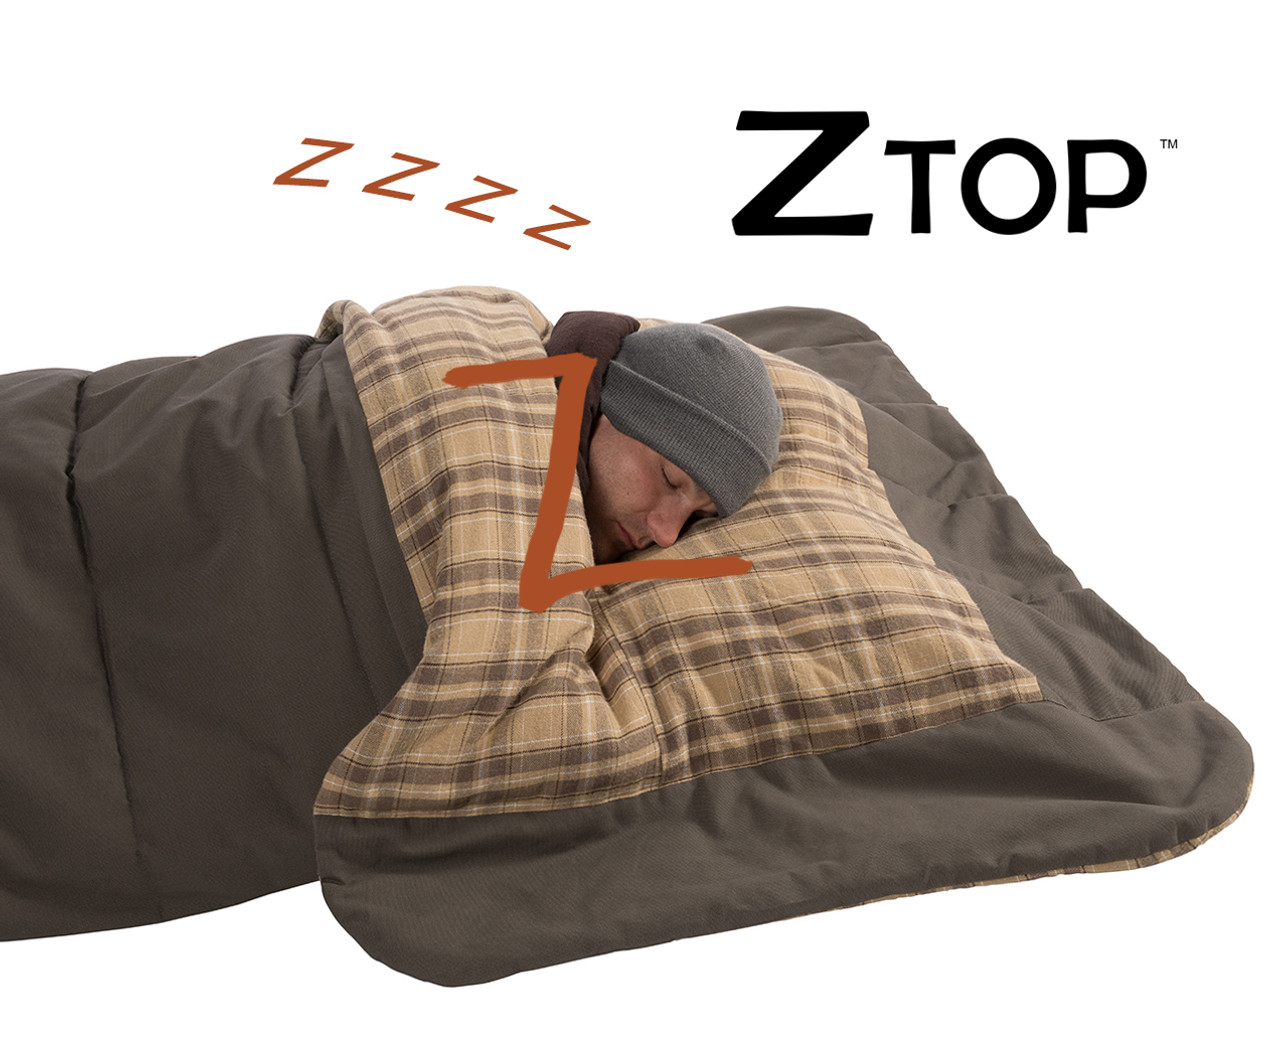 0°F XLT Z Top Sleeping Bag